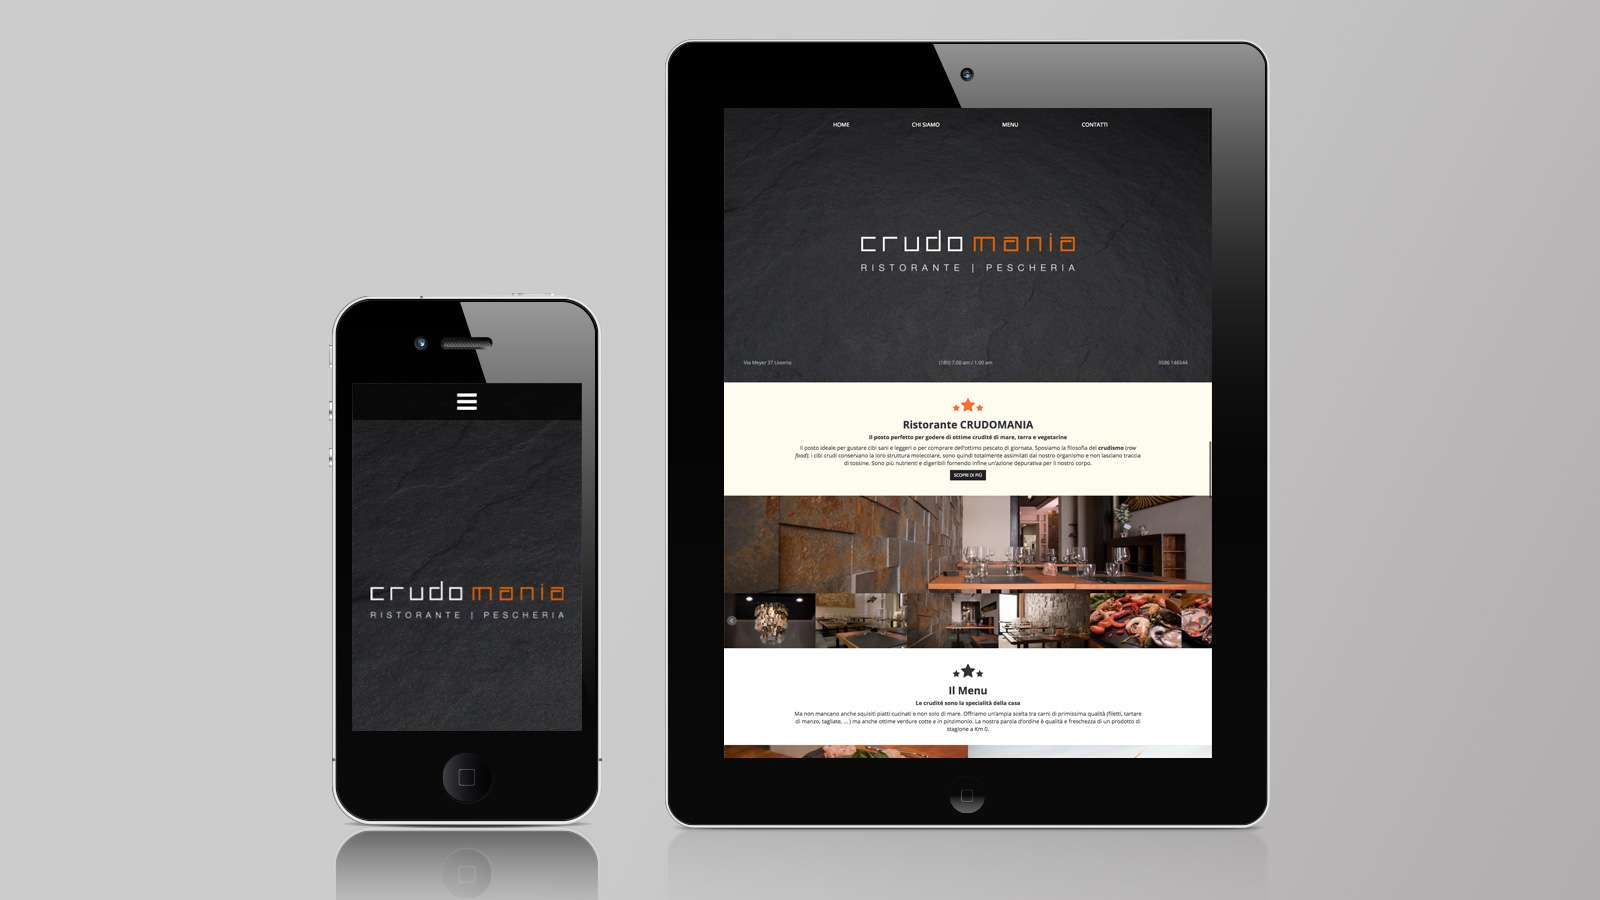 Crudomania - Mobile site